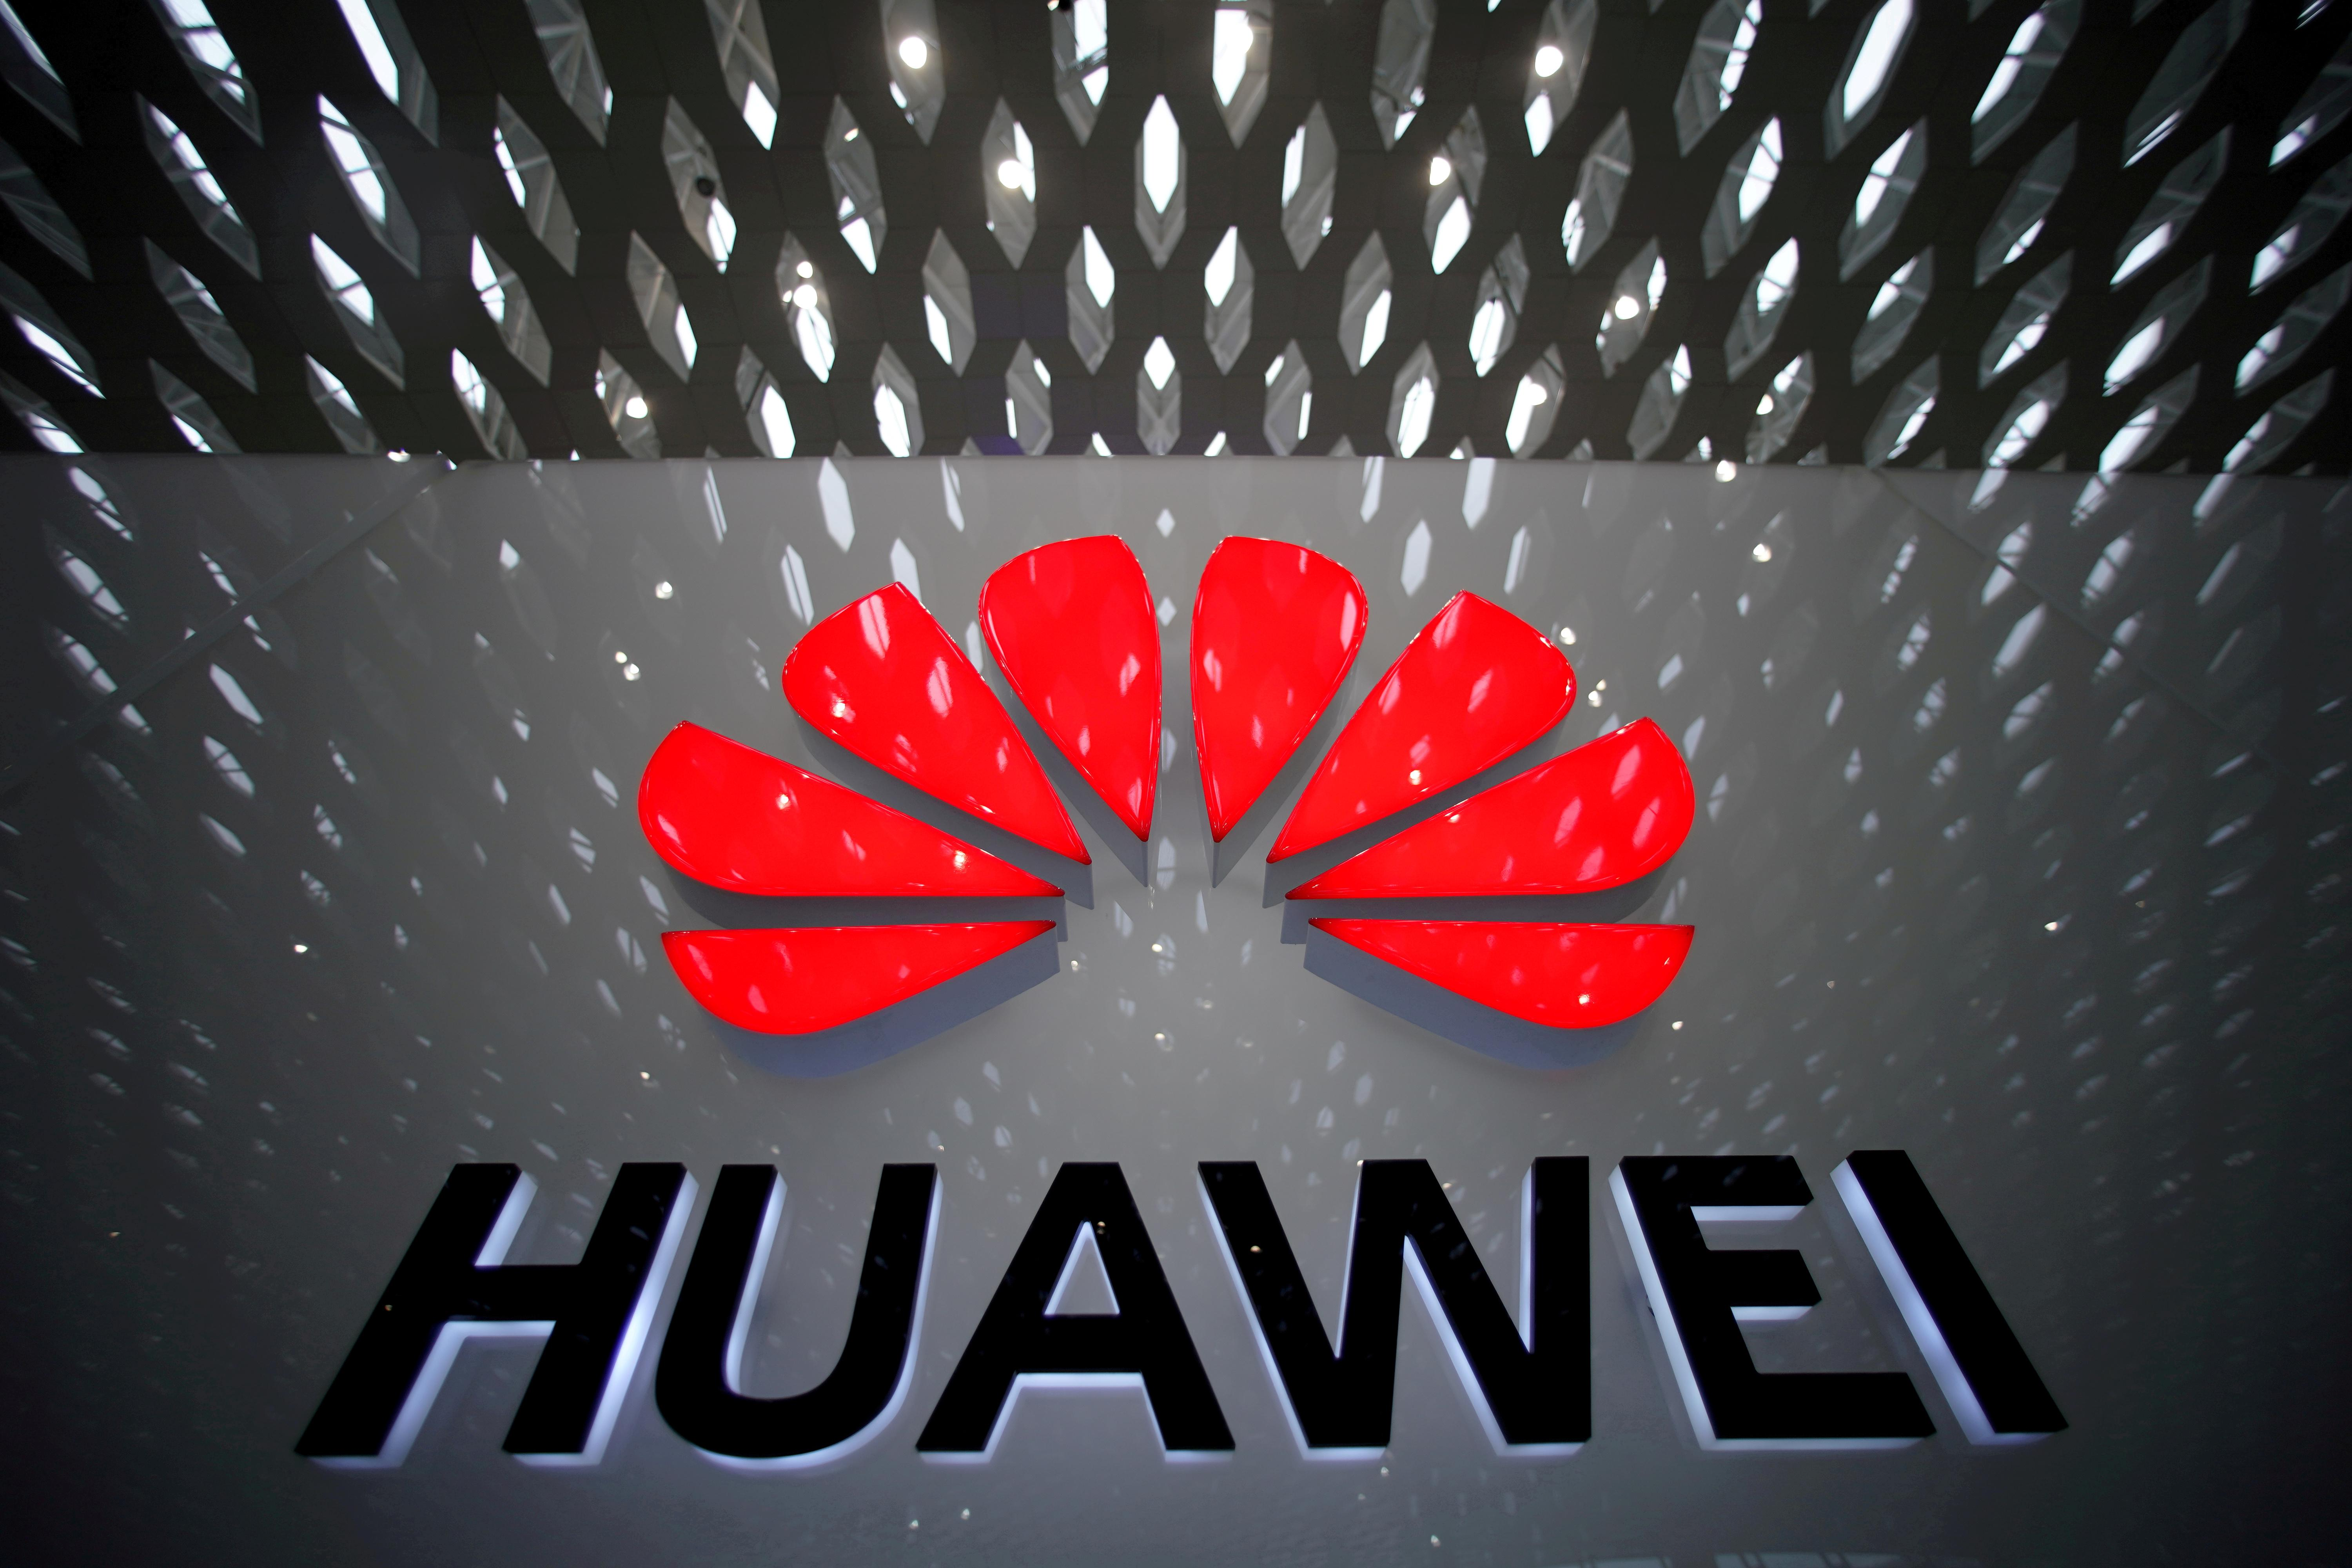 Exclusive: White House considered kicking Huawei out of U.S....